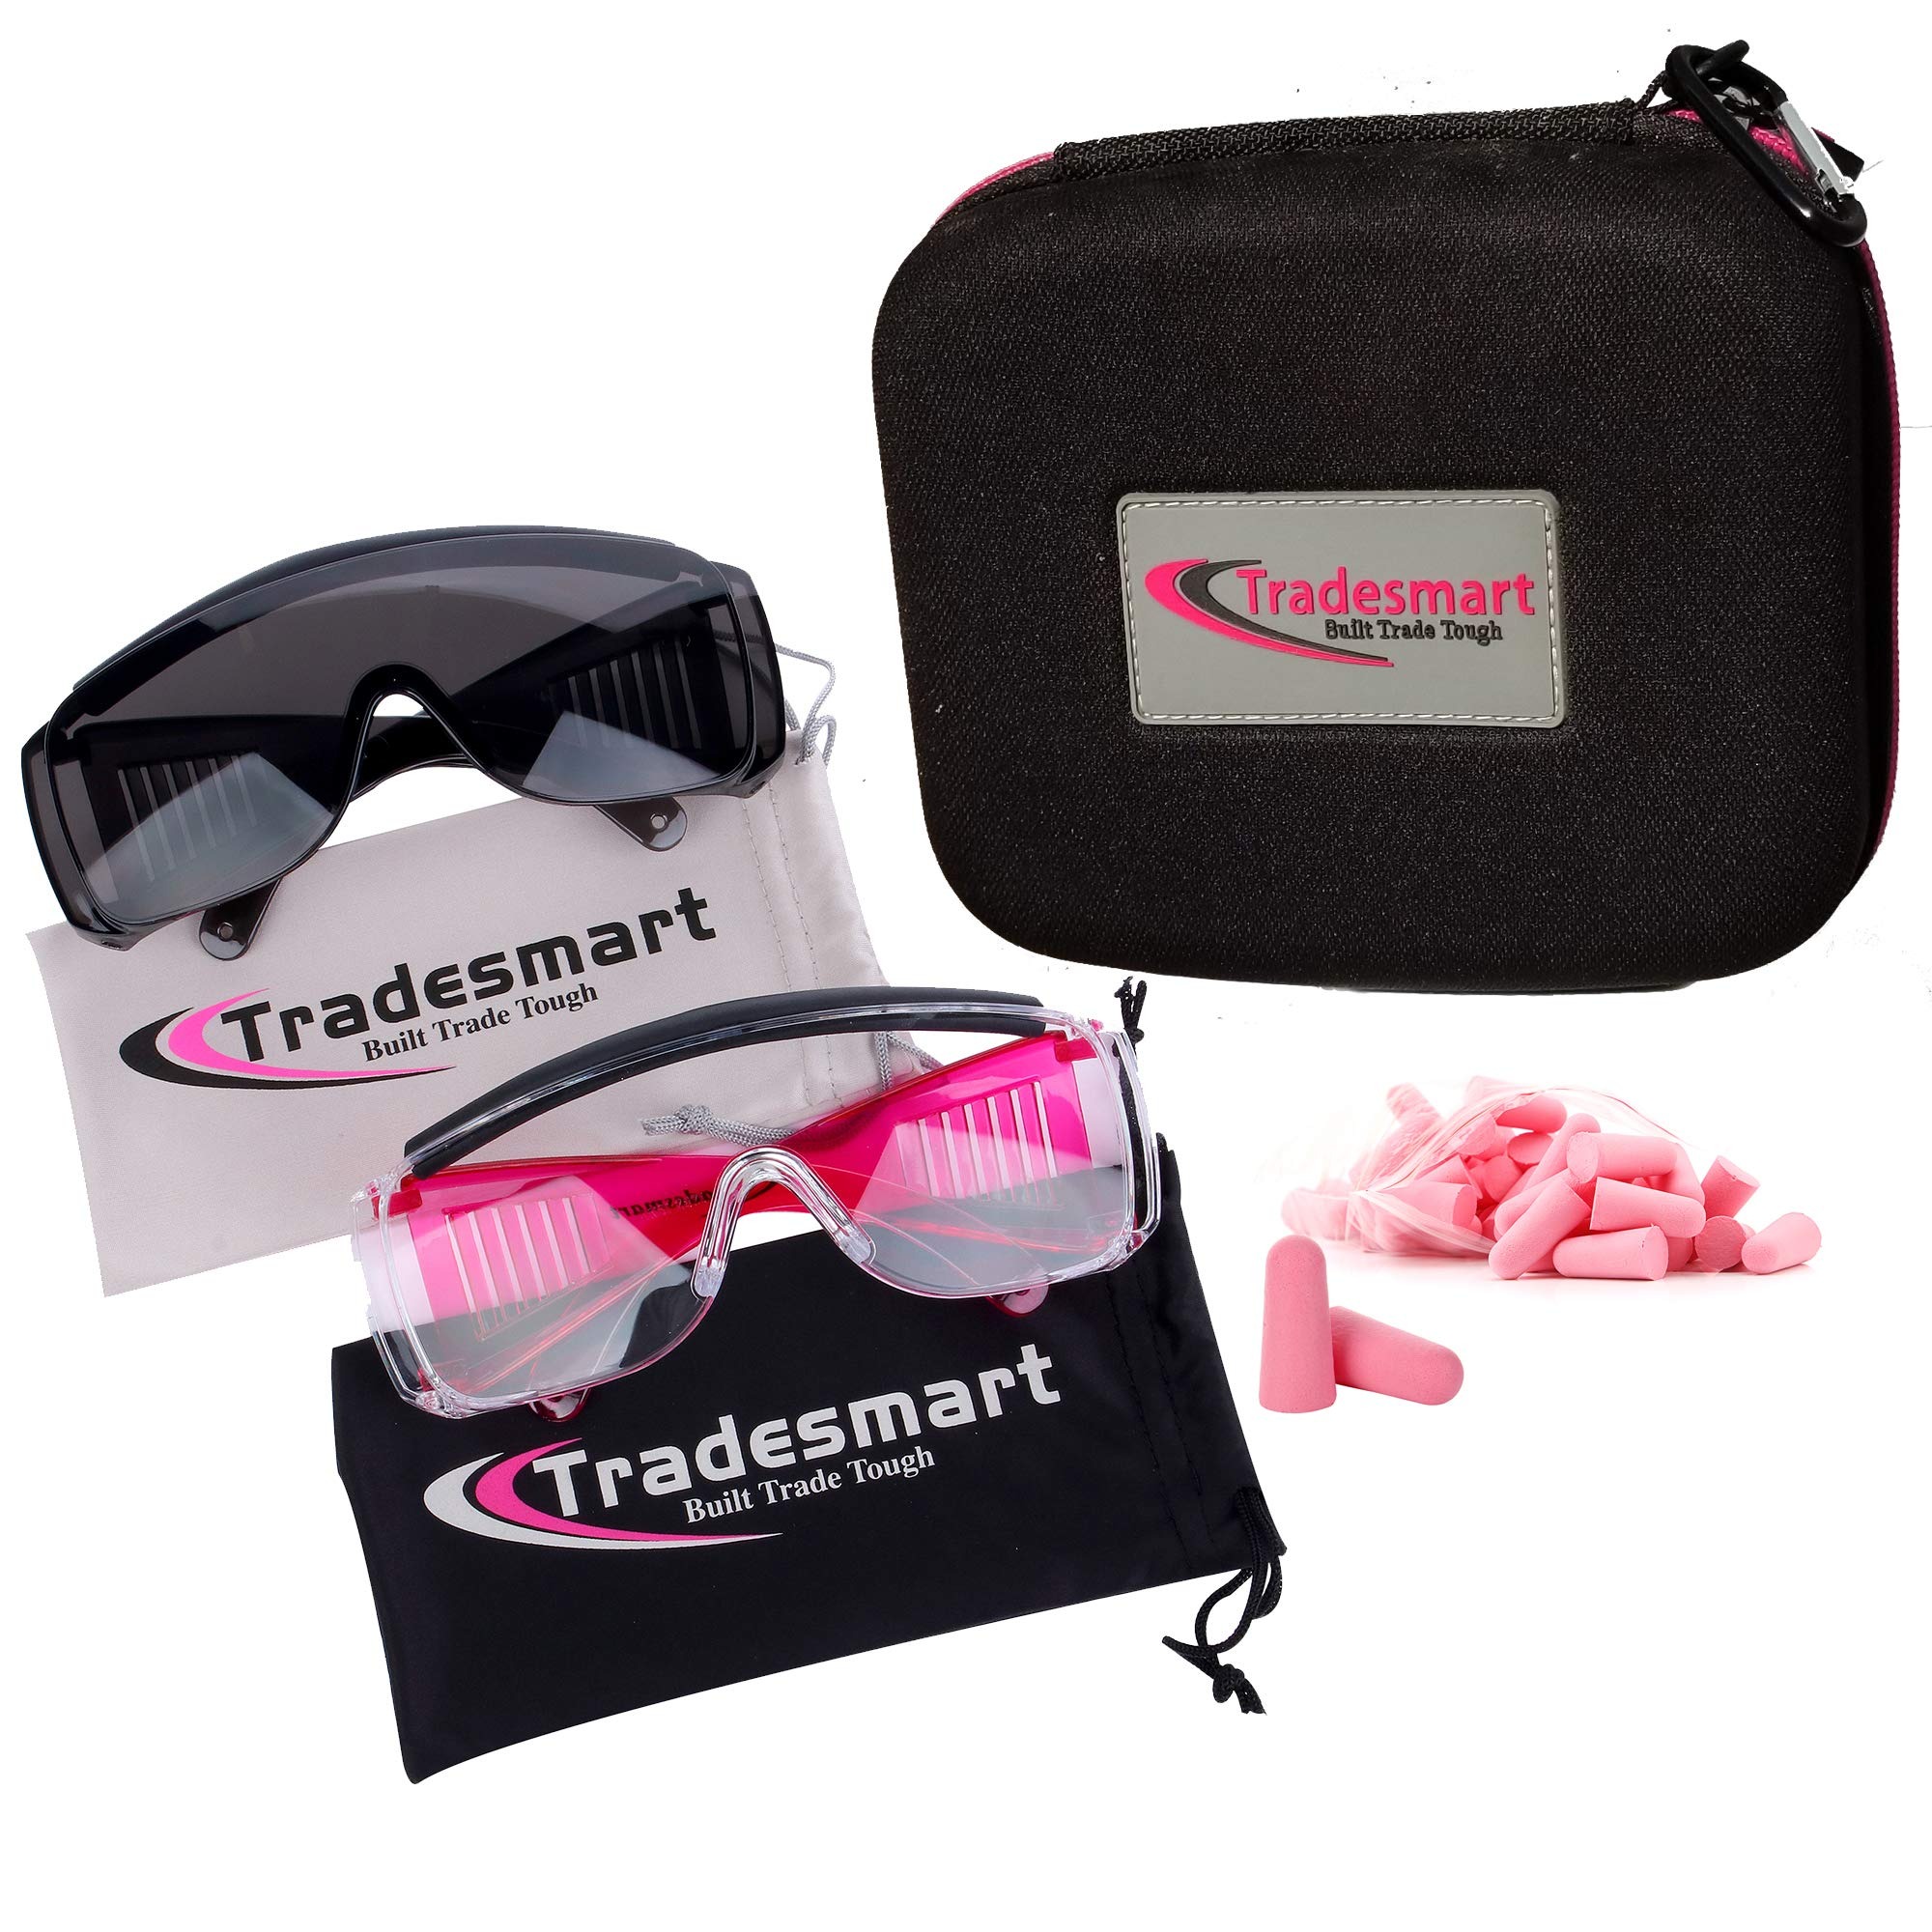 TRADESMART Over-Prescription Safety Glasses & Case - Shooting Ear Plug & Eye Protection for The Gun Range with Hard Case, - UV400 Anti-Fog and Anti-Scratch Indoor & Outdoor Glasses - NRR 33 (Pink) by TRADESMART BUILT TRADE TOUGH